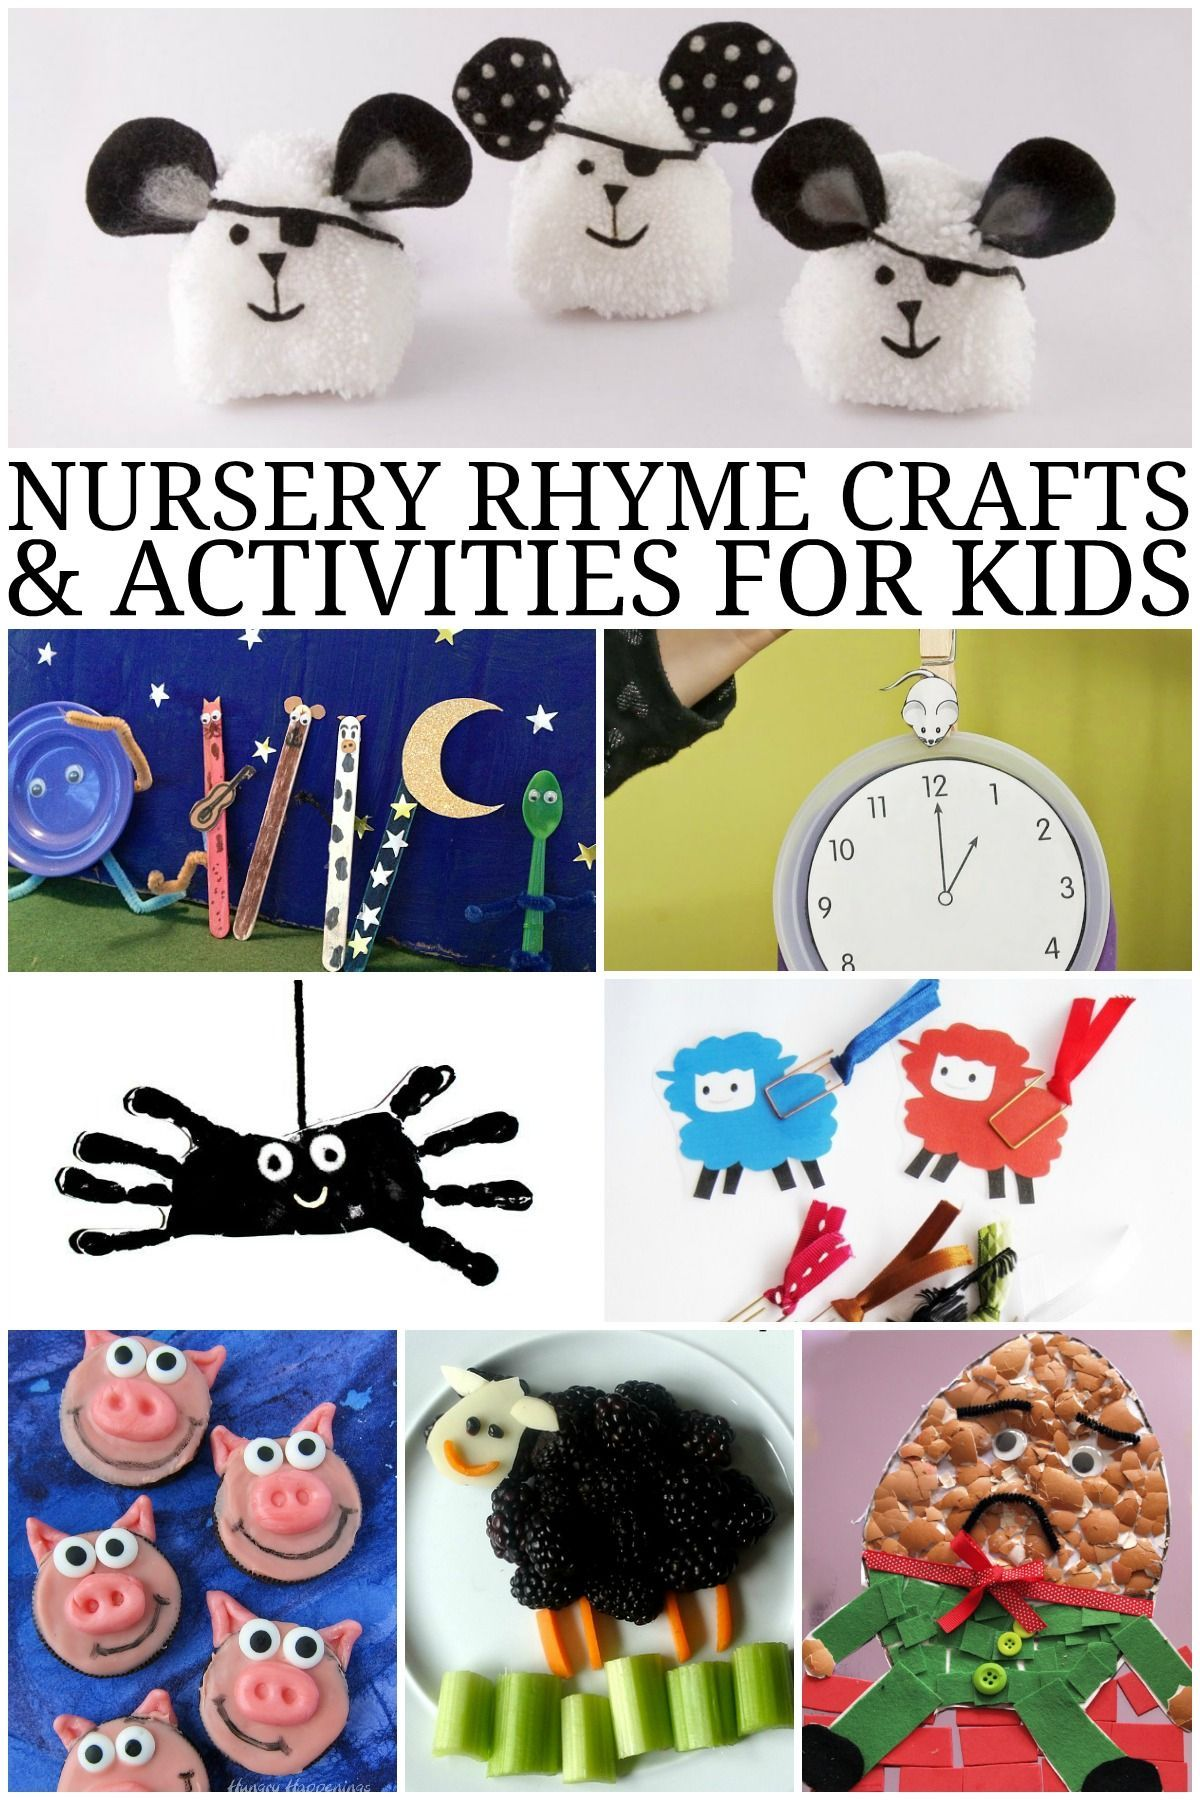 Nursery Rhyme Crafts And Activities For Kids With Images